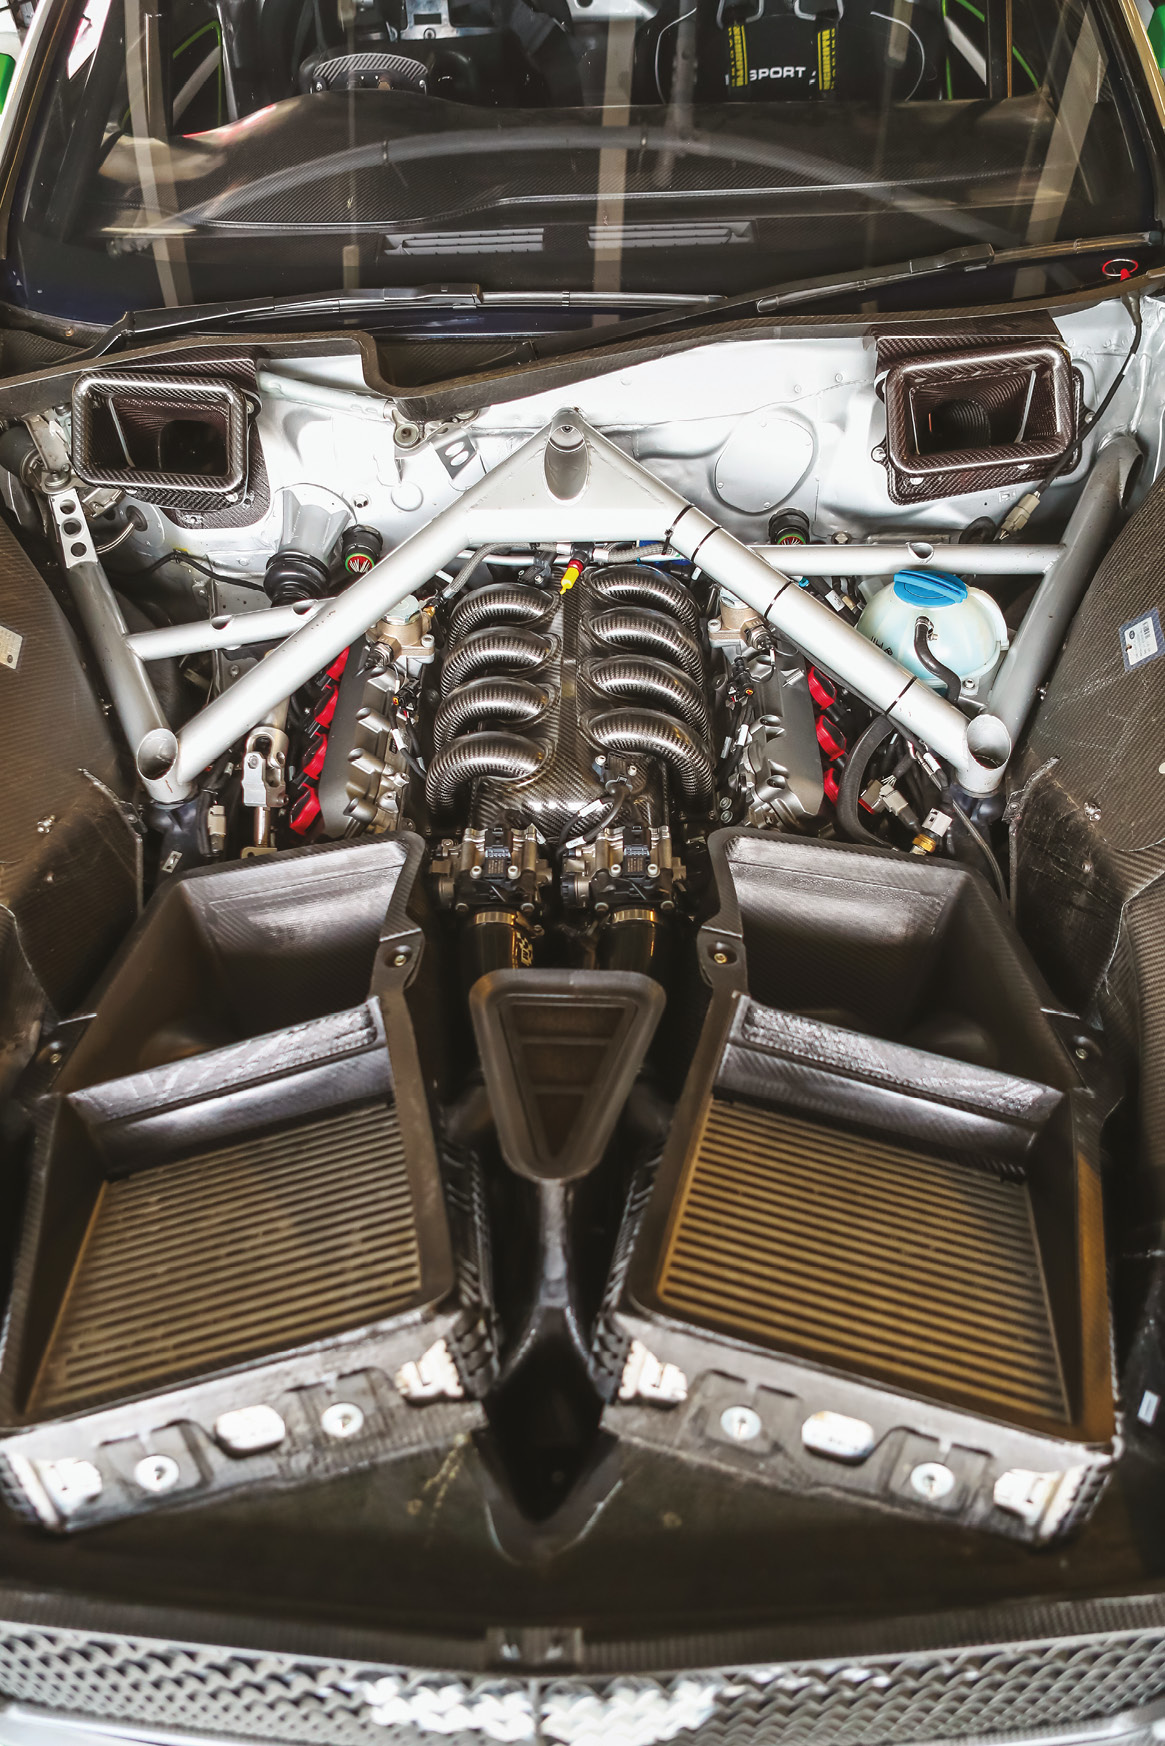 The 4-litre twin turbo engine is mounted way back in the chassis